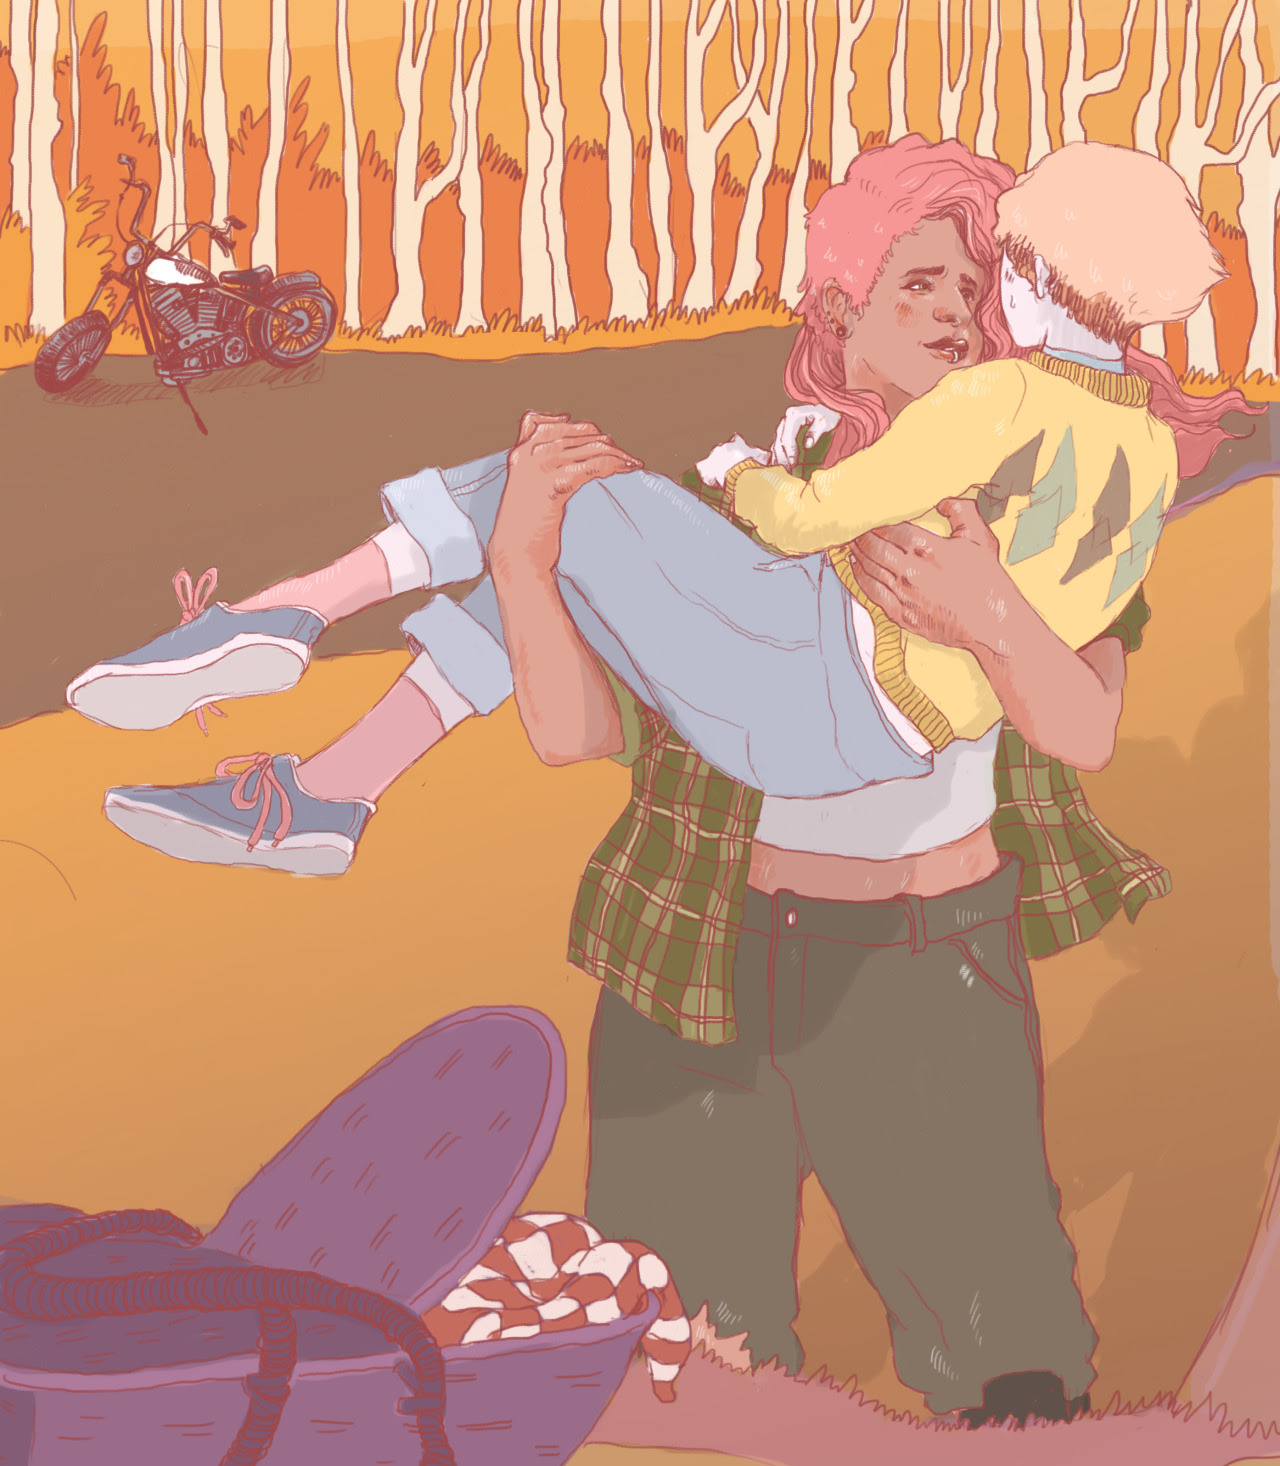 Pearl and mystery girl on a picnic date